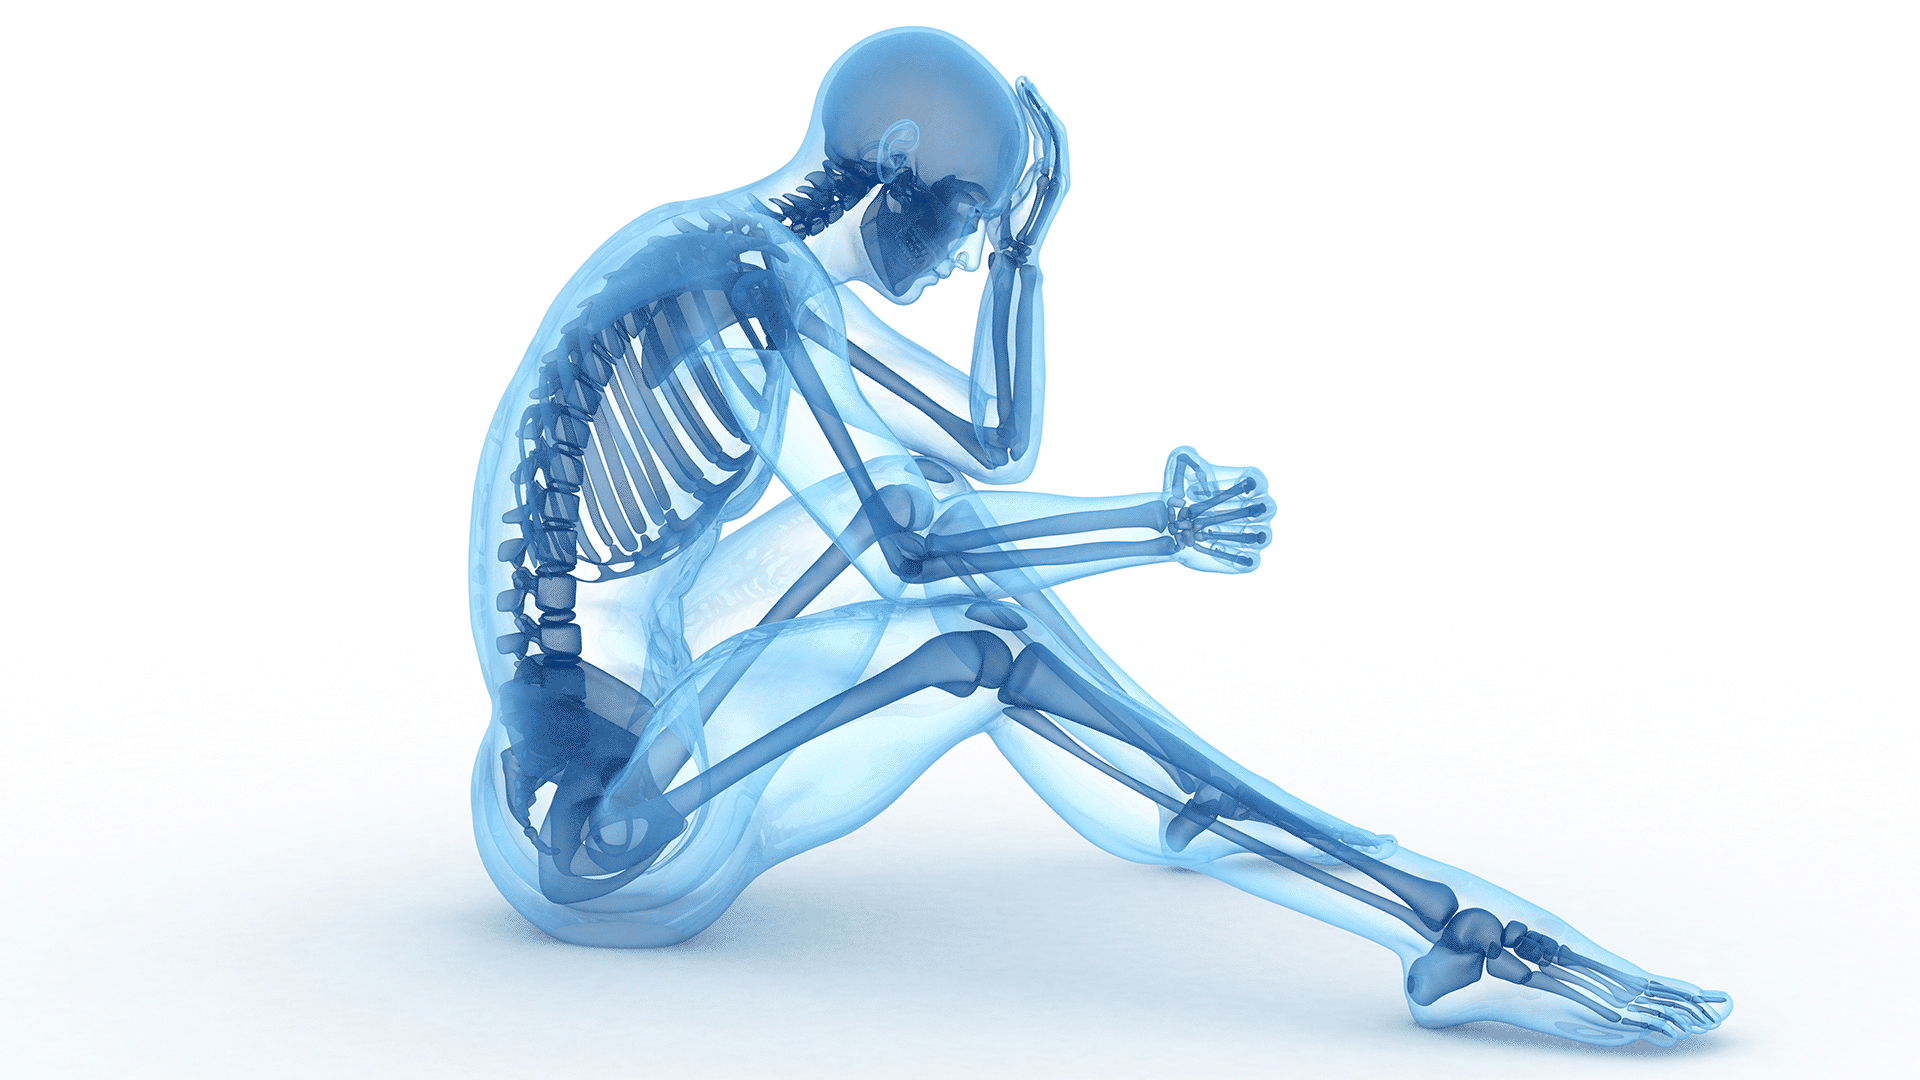 illustration of xray of a human body